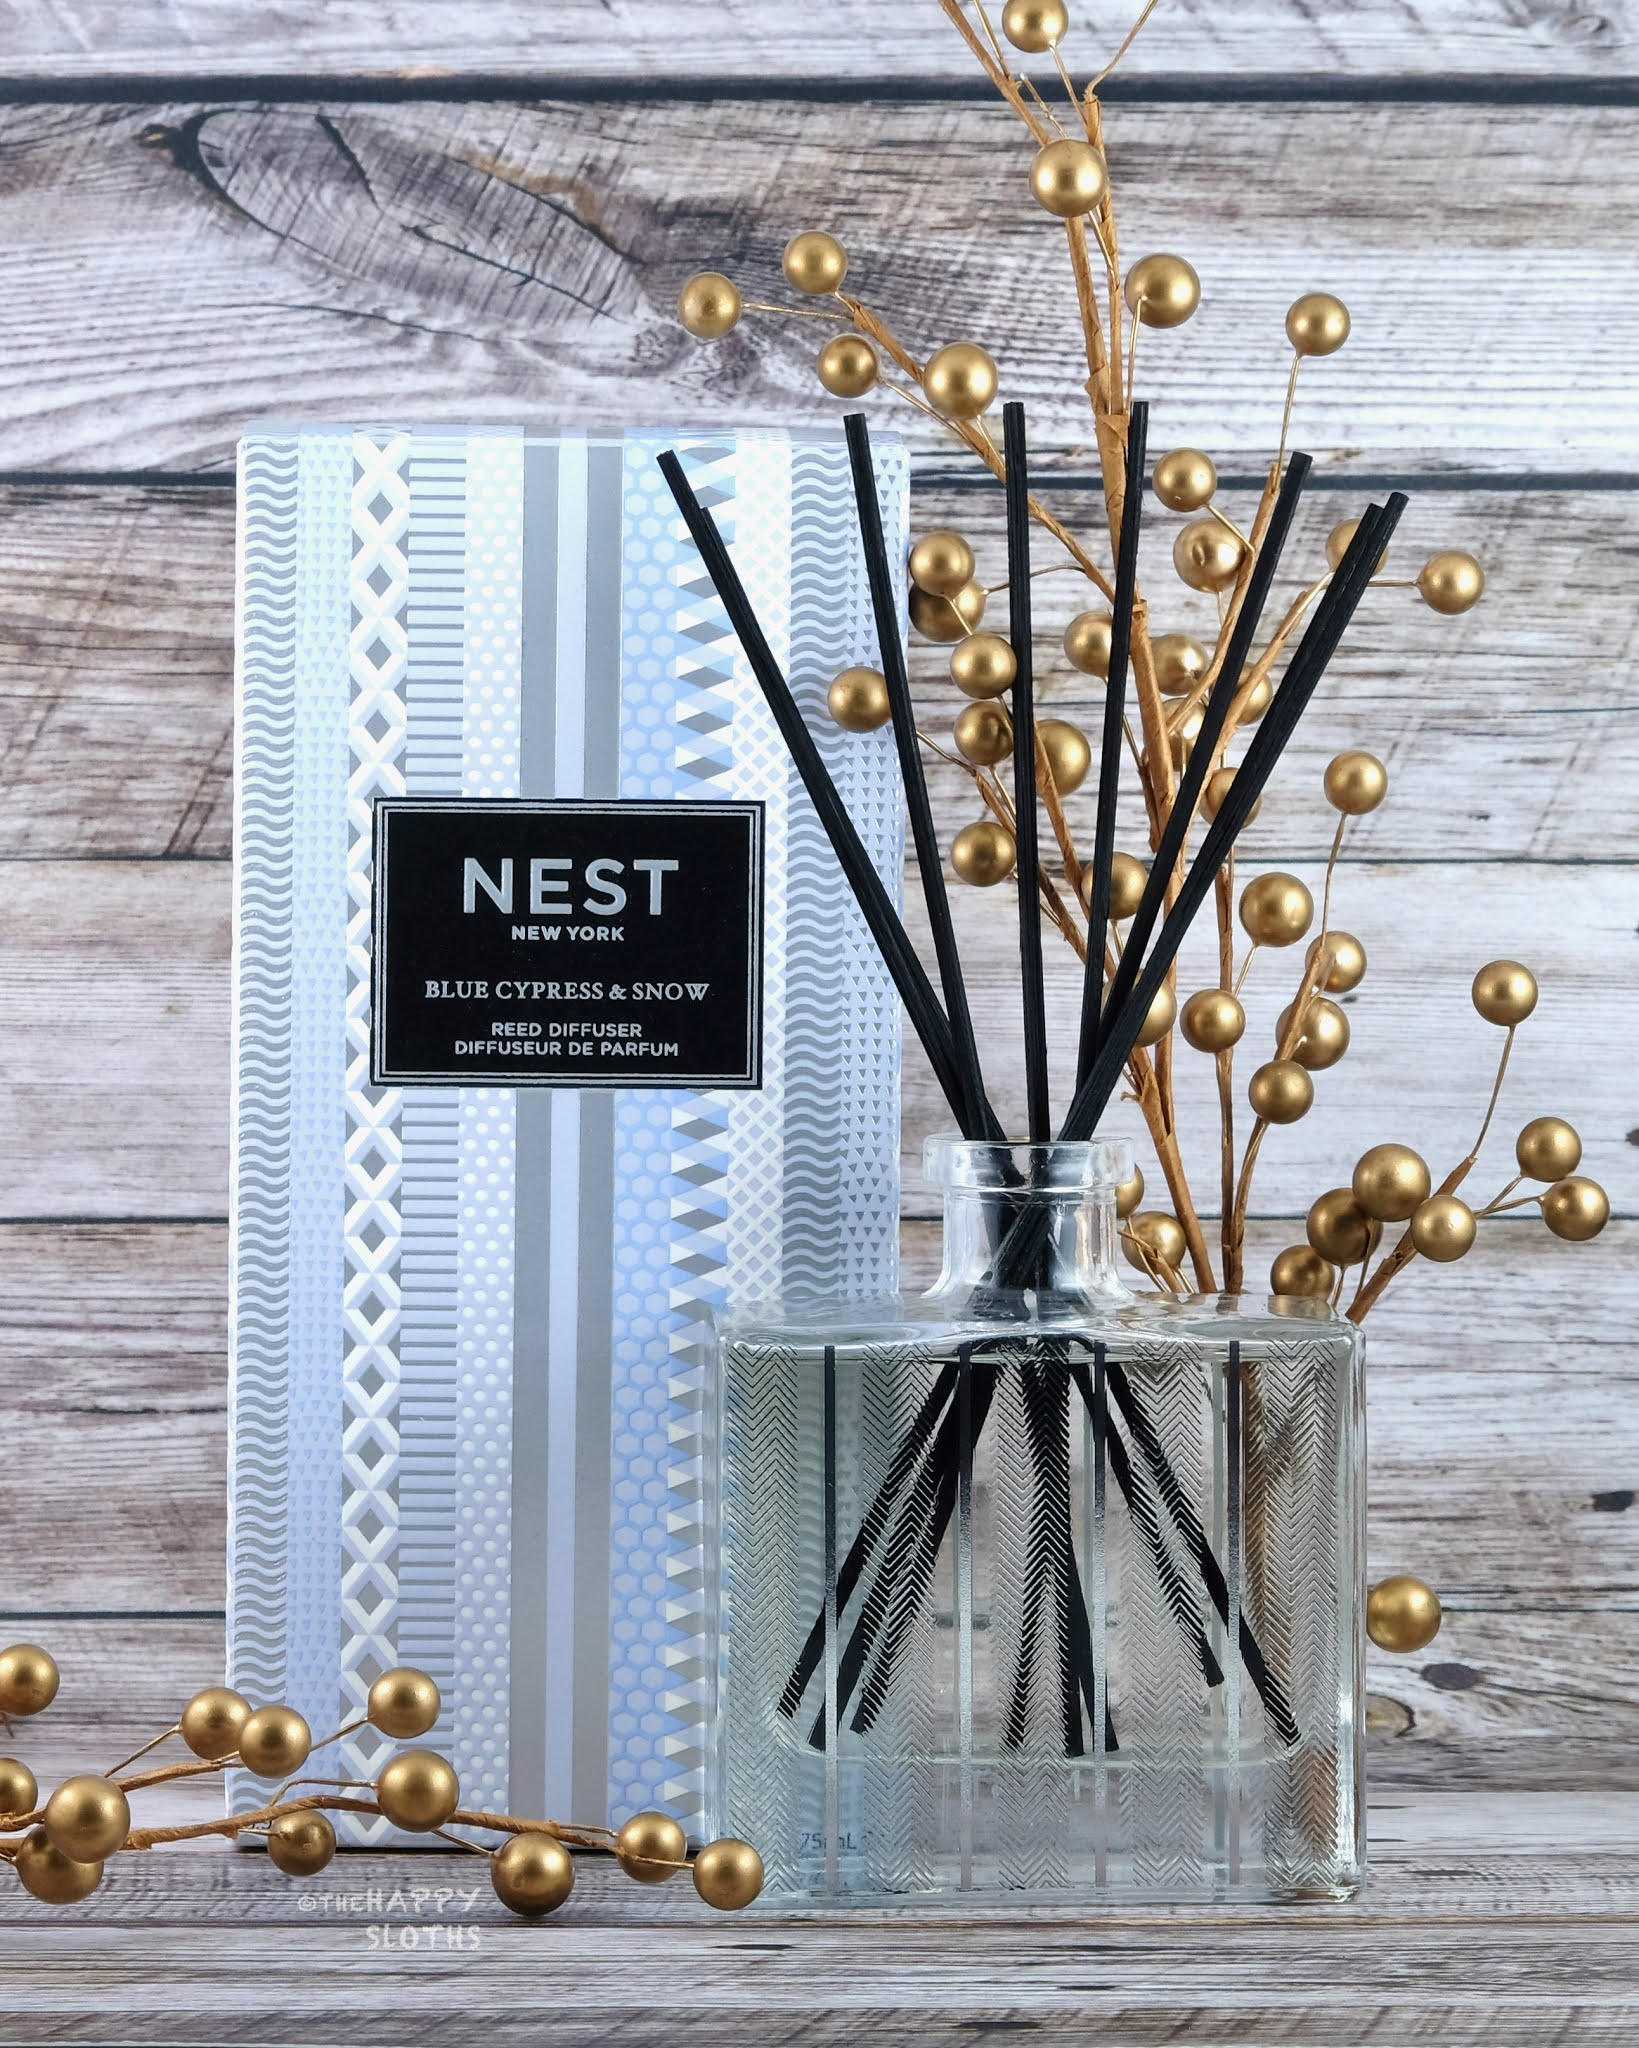 NEST New York | Holiday 2020 Blue Cypress & Snow Diffuser: Review